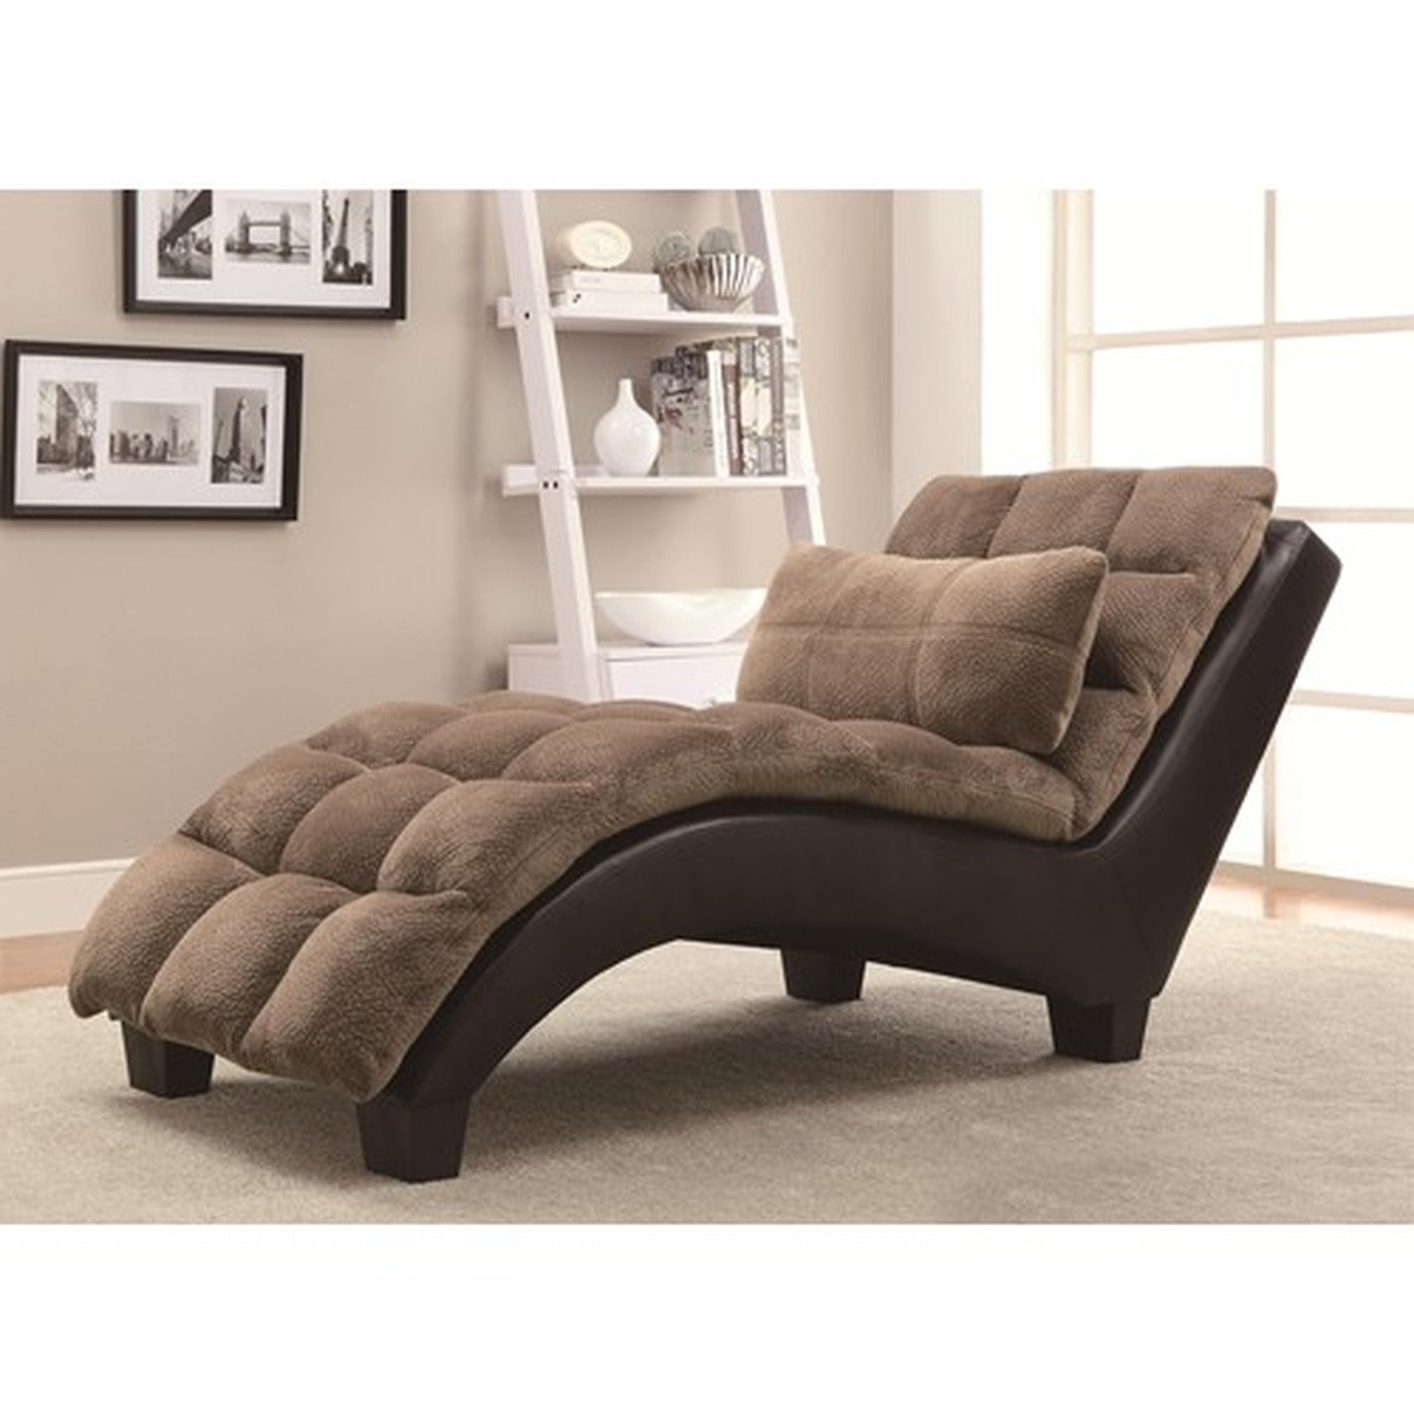 Newest Brown Chaise Lounges Intended For Brown Fabric Chaise Lounge – Steal A Sofa Furniture Outlet Los (View 9 of 15)